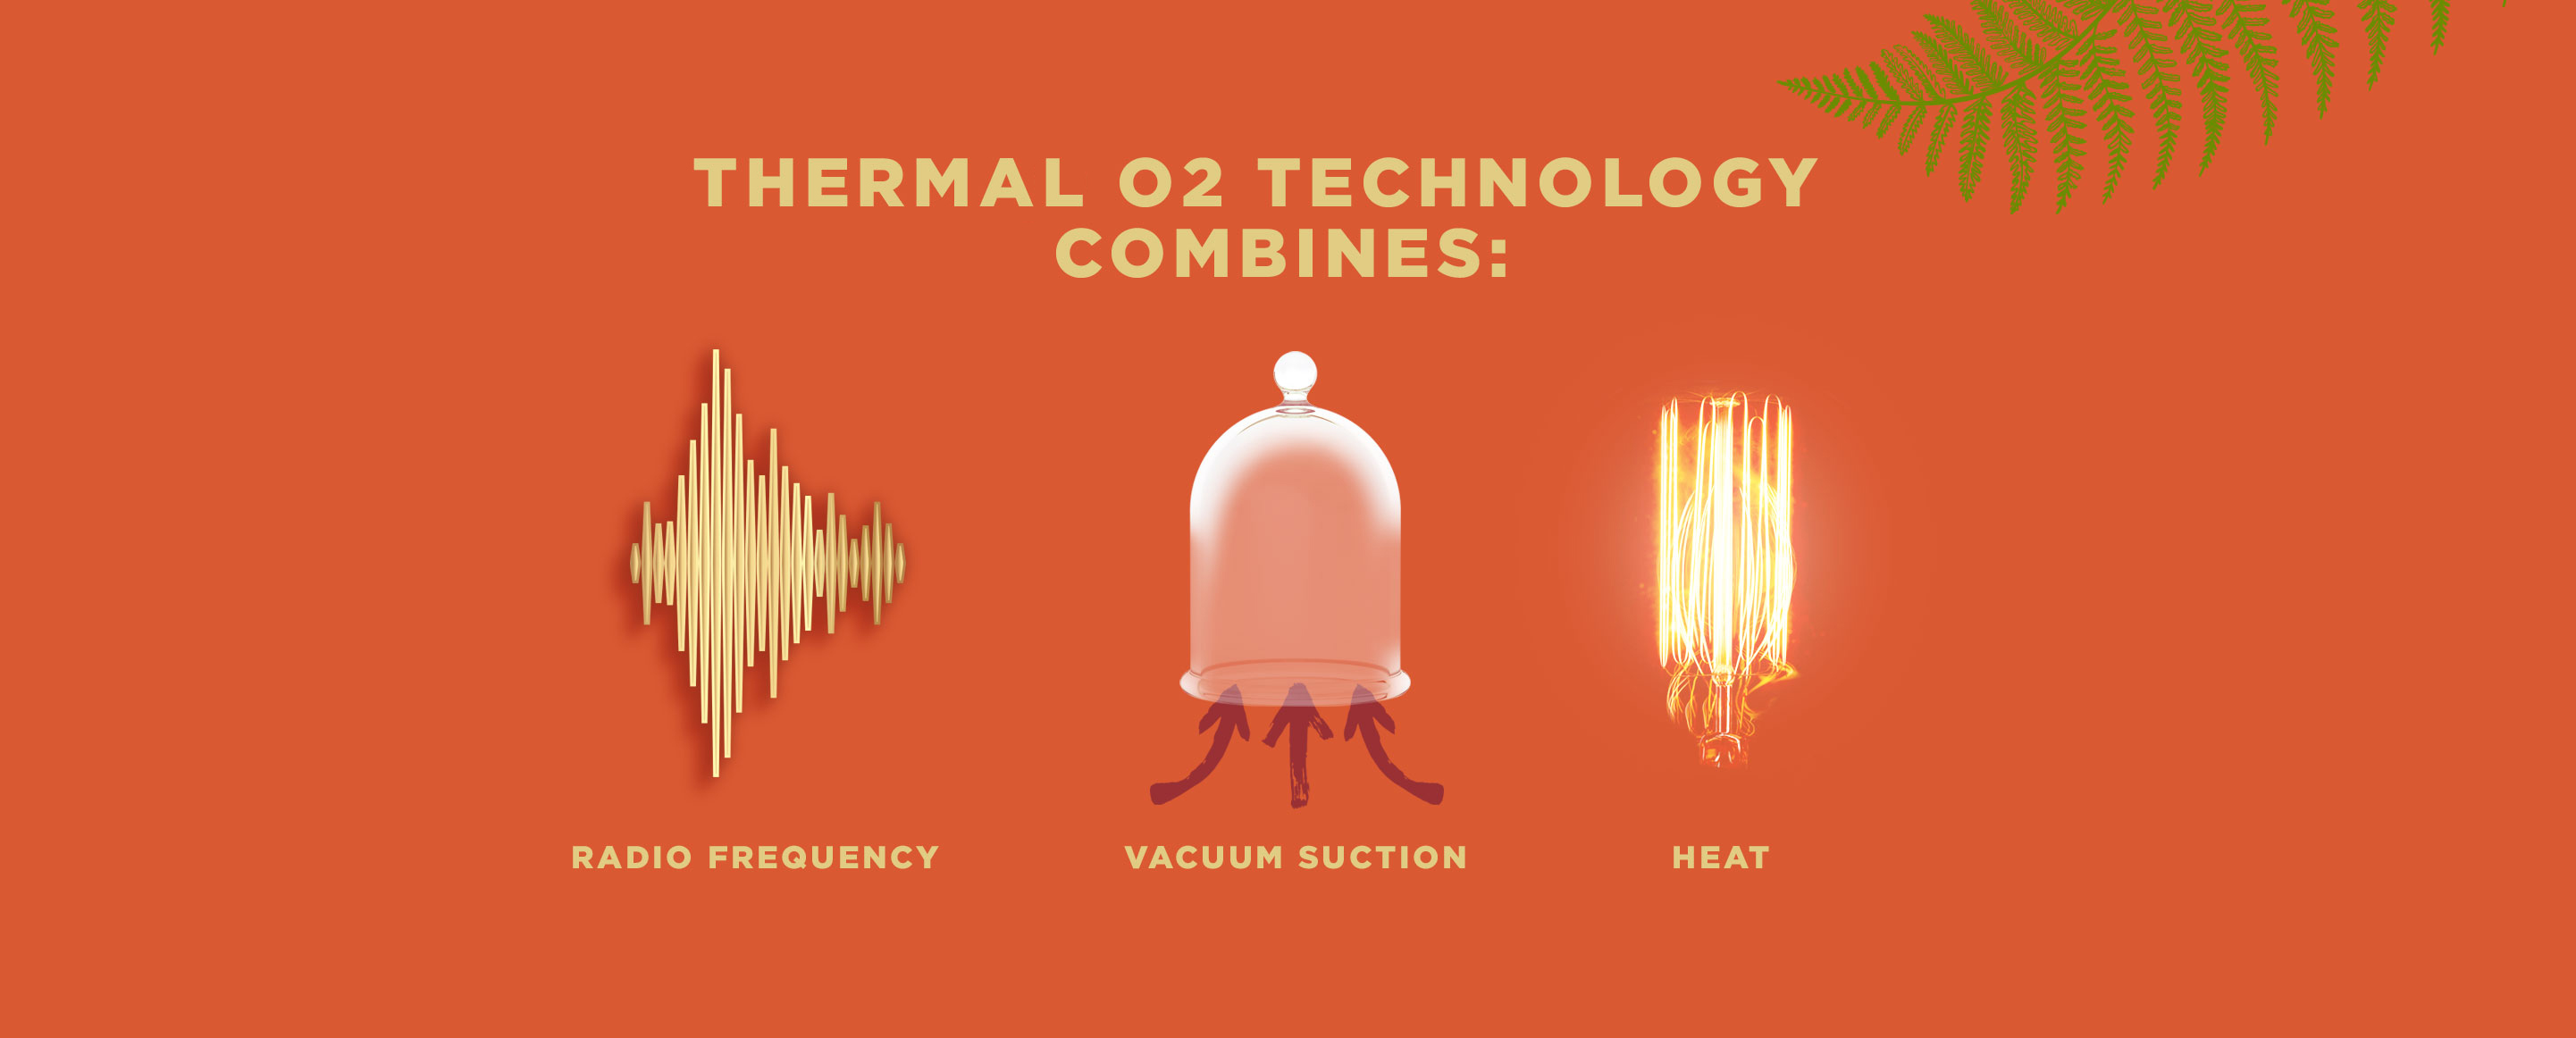 Thermal O2 Technology